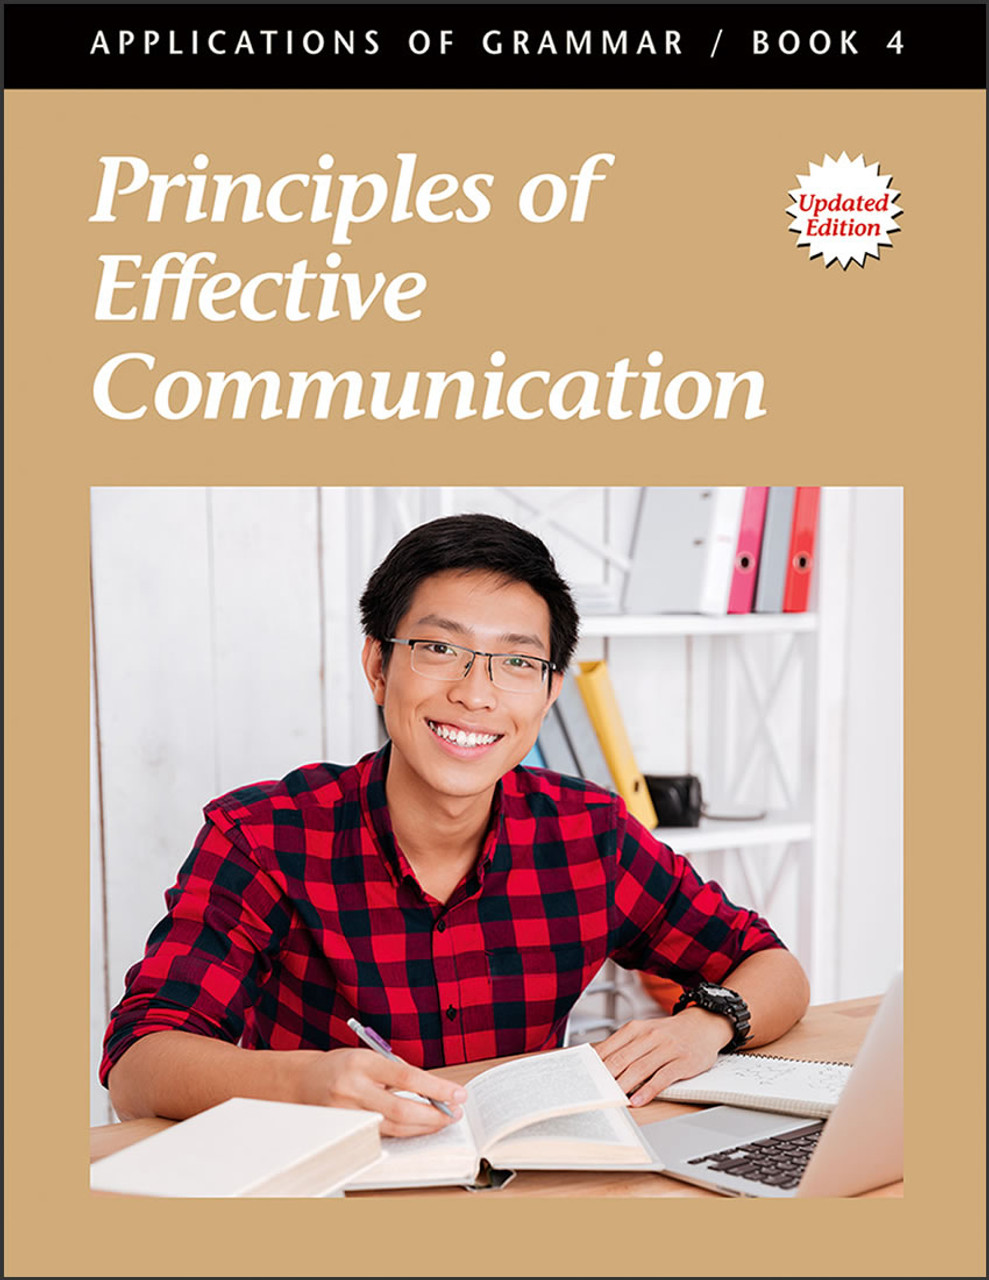 Applications of Grammar Book 4: Principles of Effective Communication, updated edition